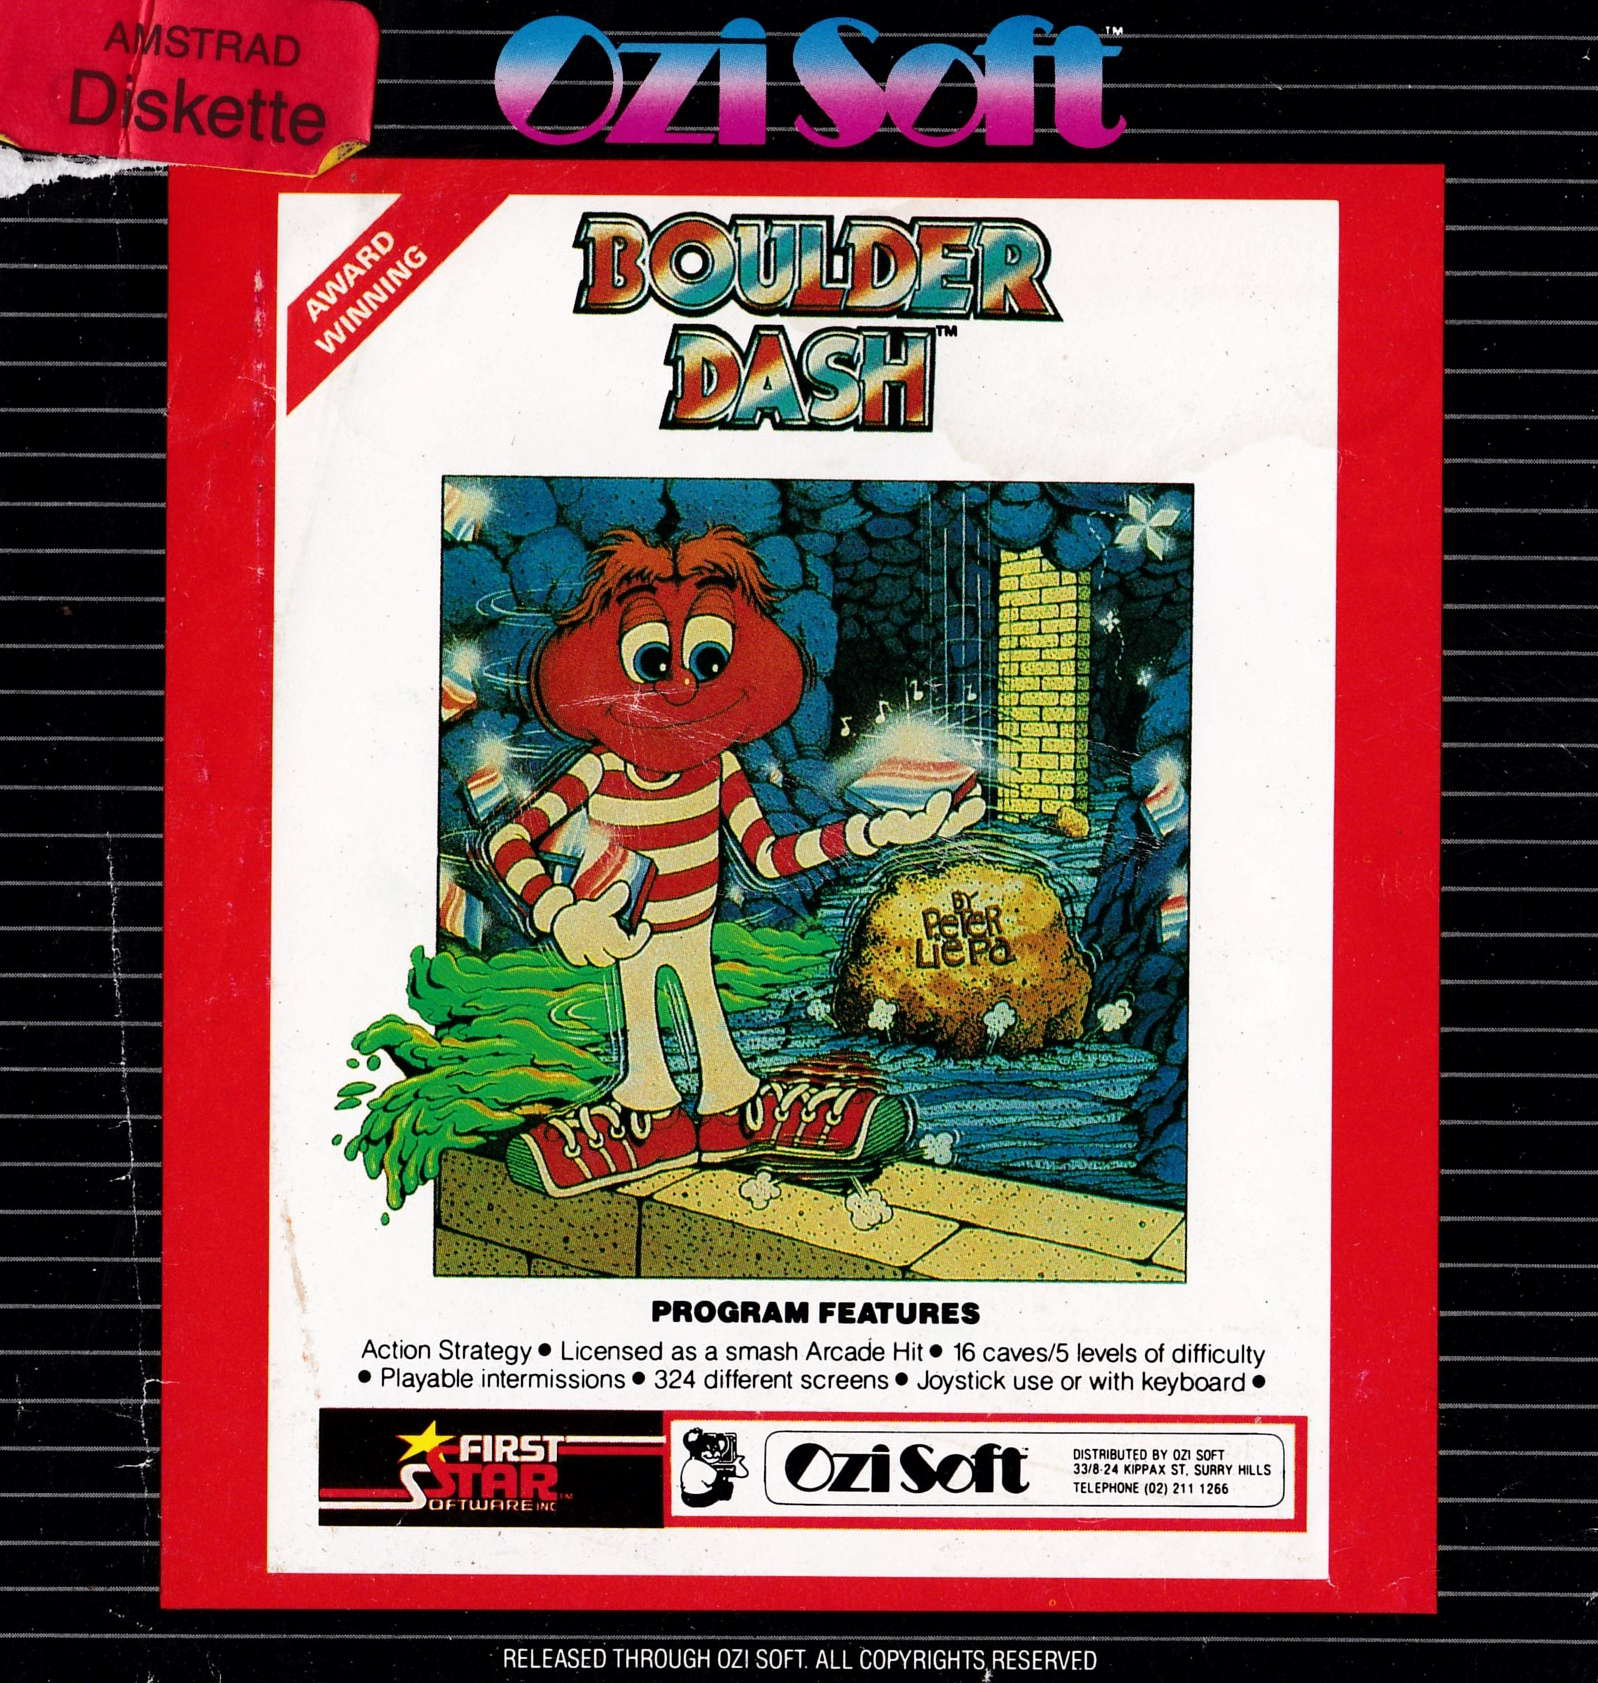 cover of the Amstrad CPC game Boulder Dash  by GameBase CPC